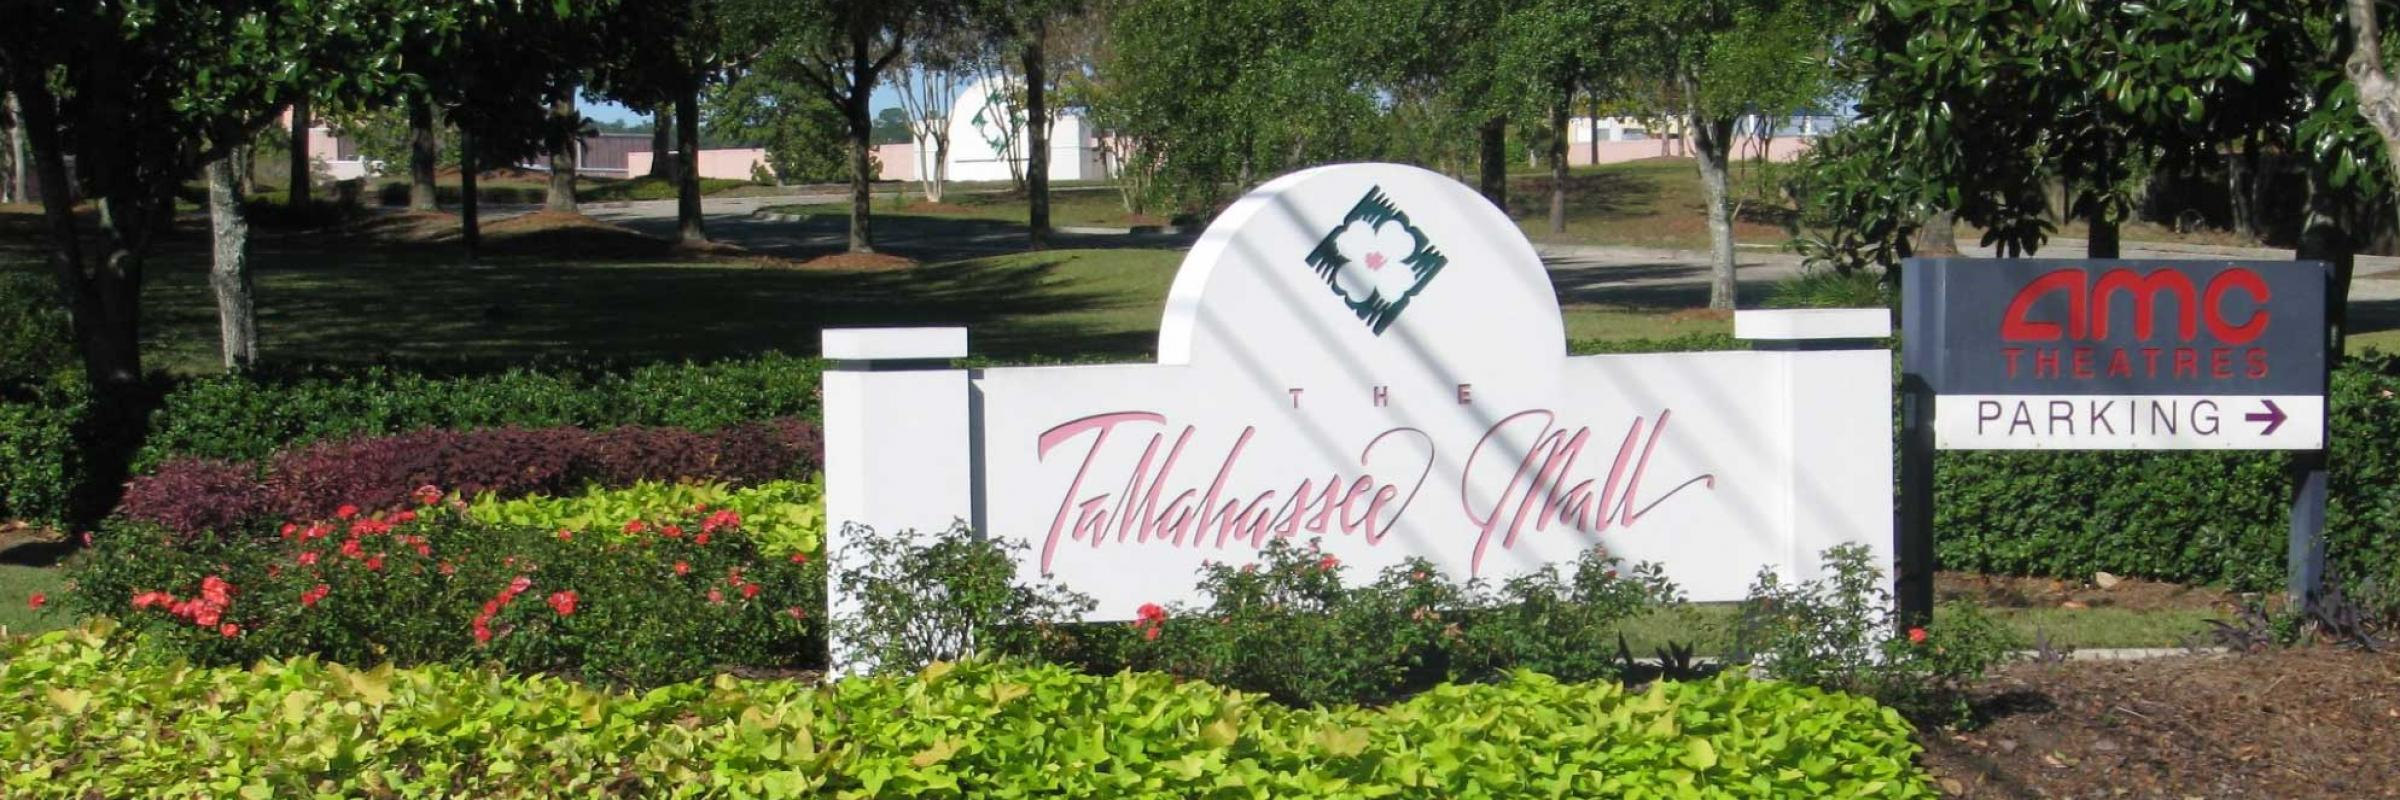 The Centre of Tallahassee